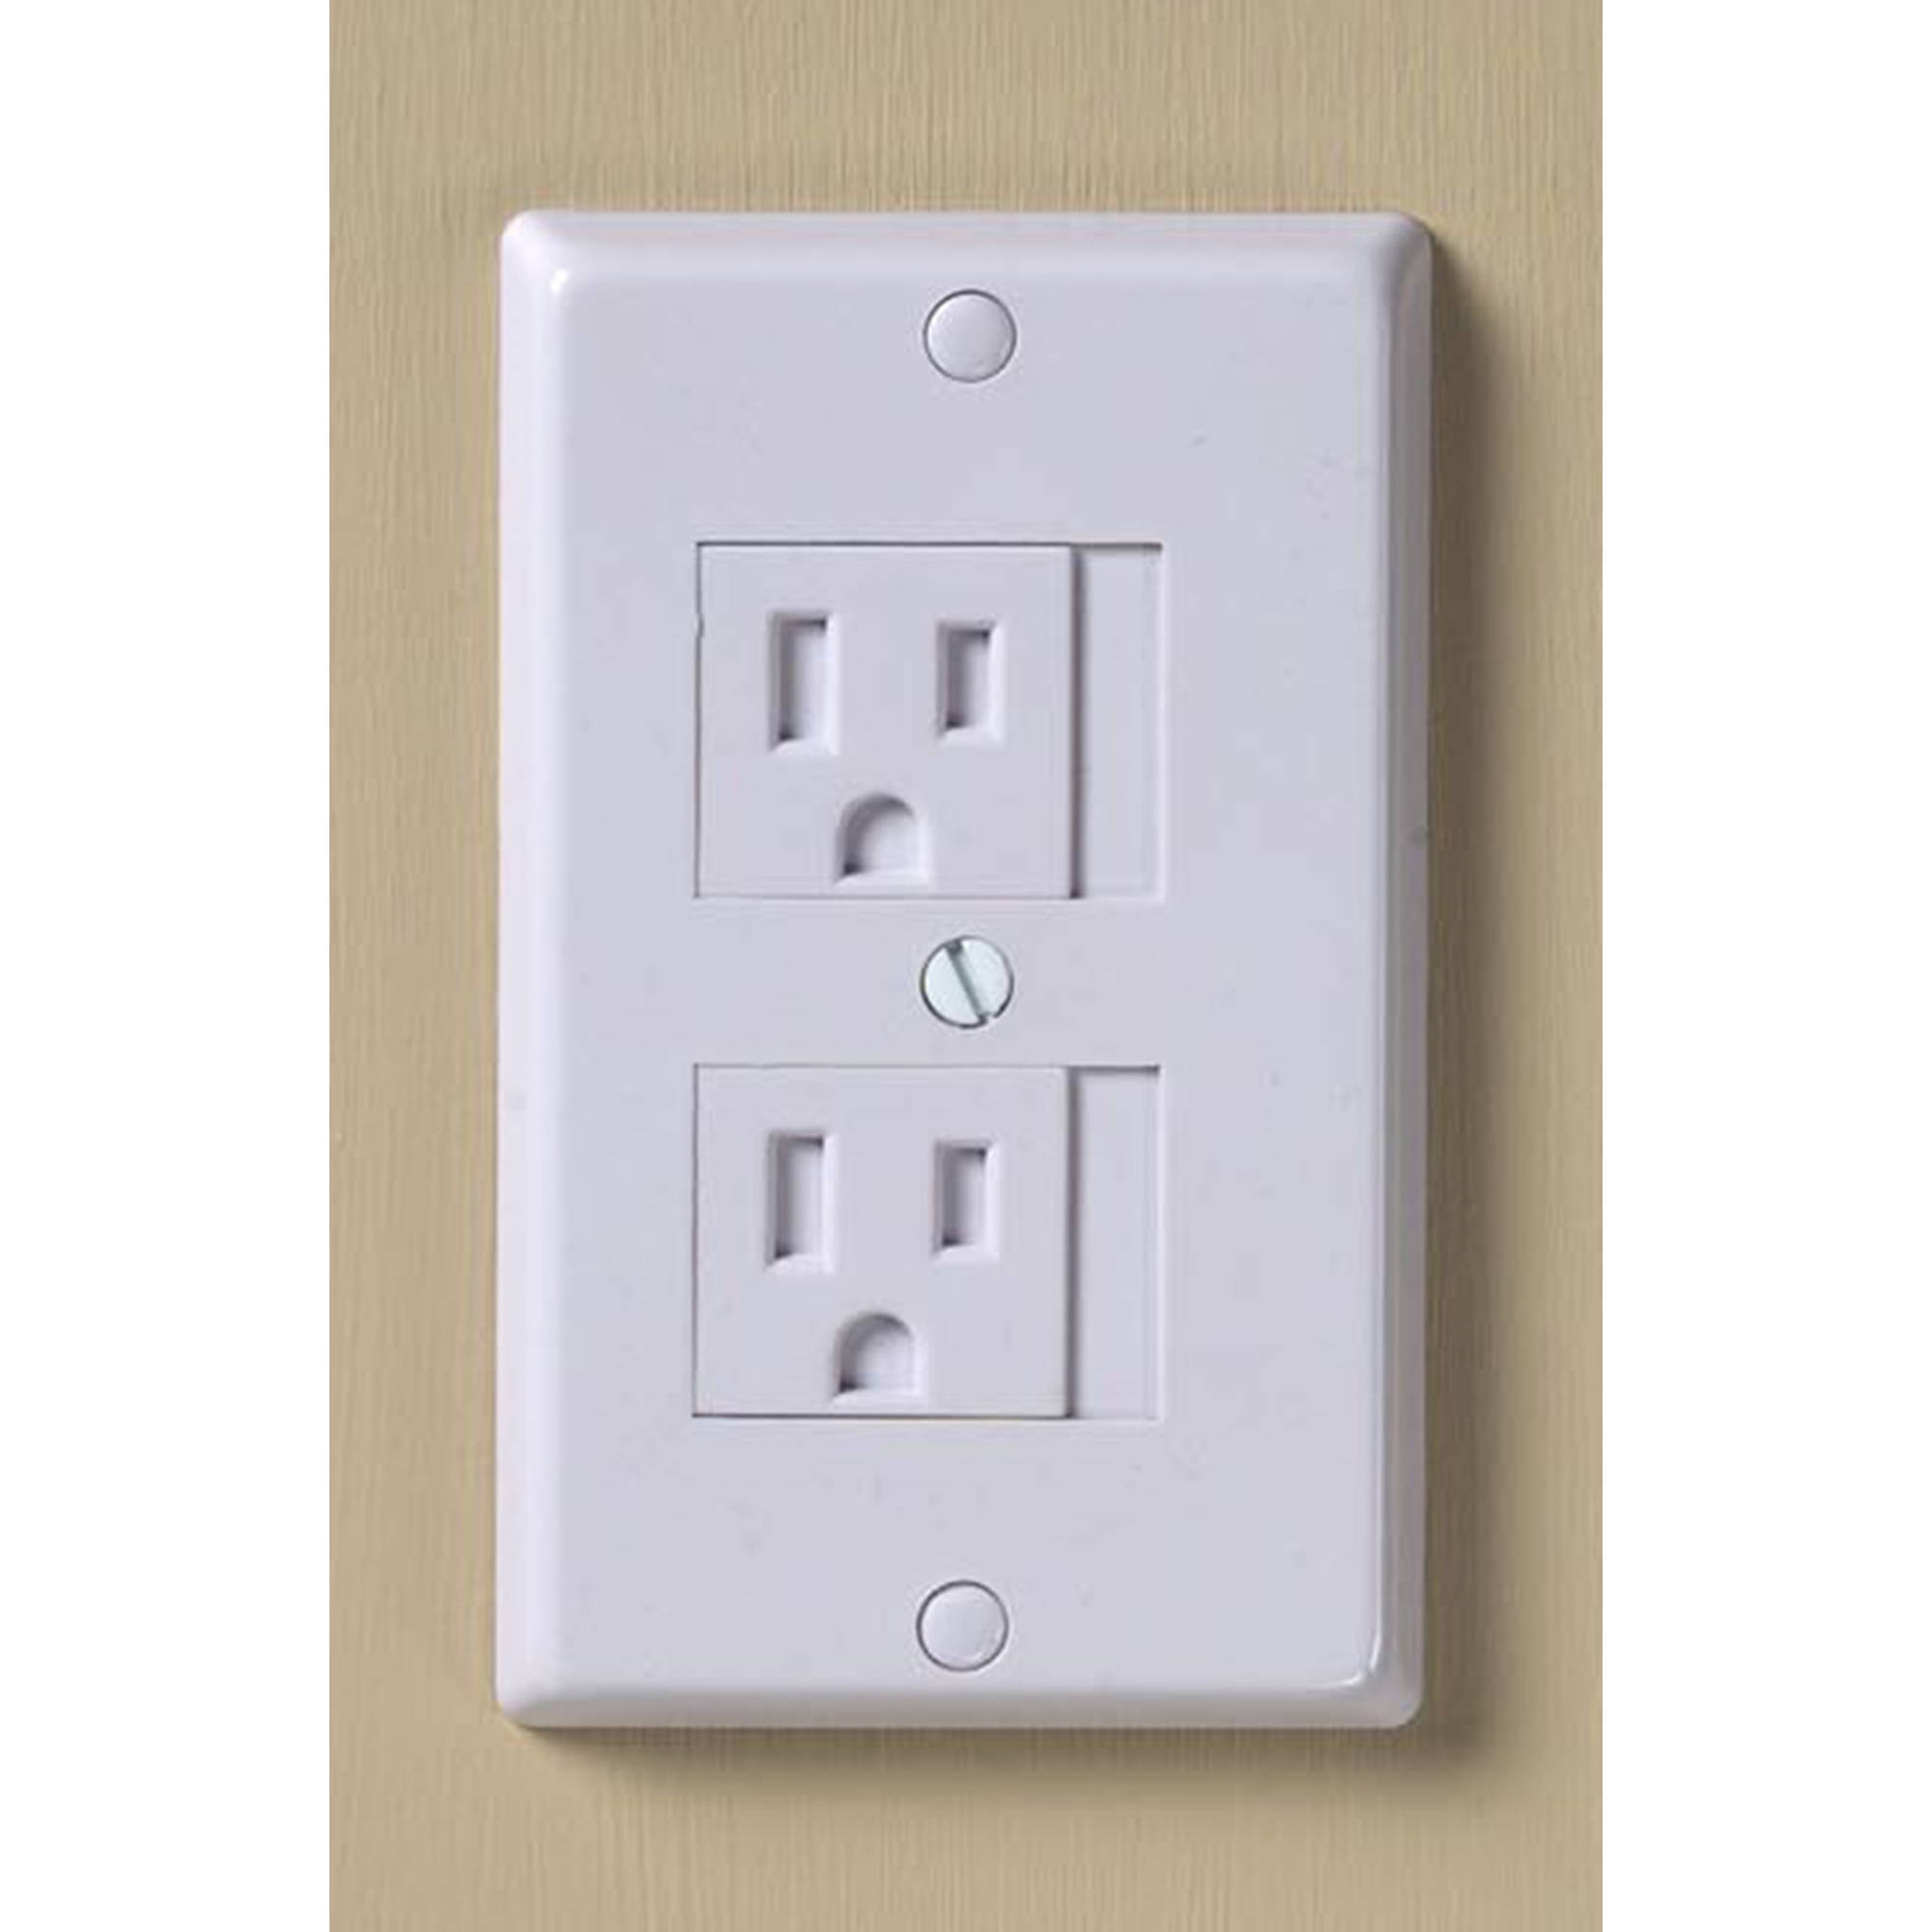 KidCo Universal Outlet Cover